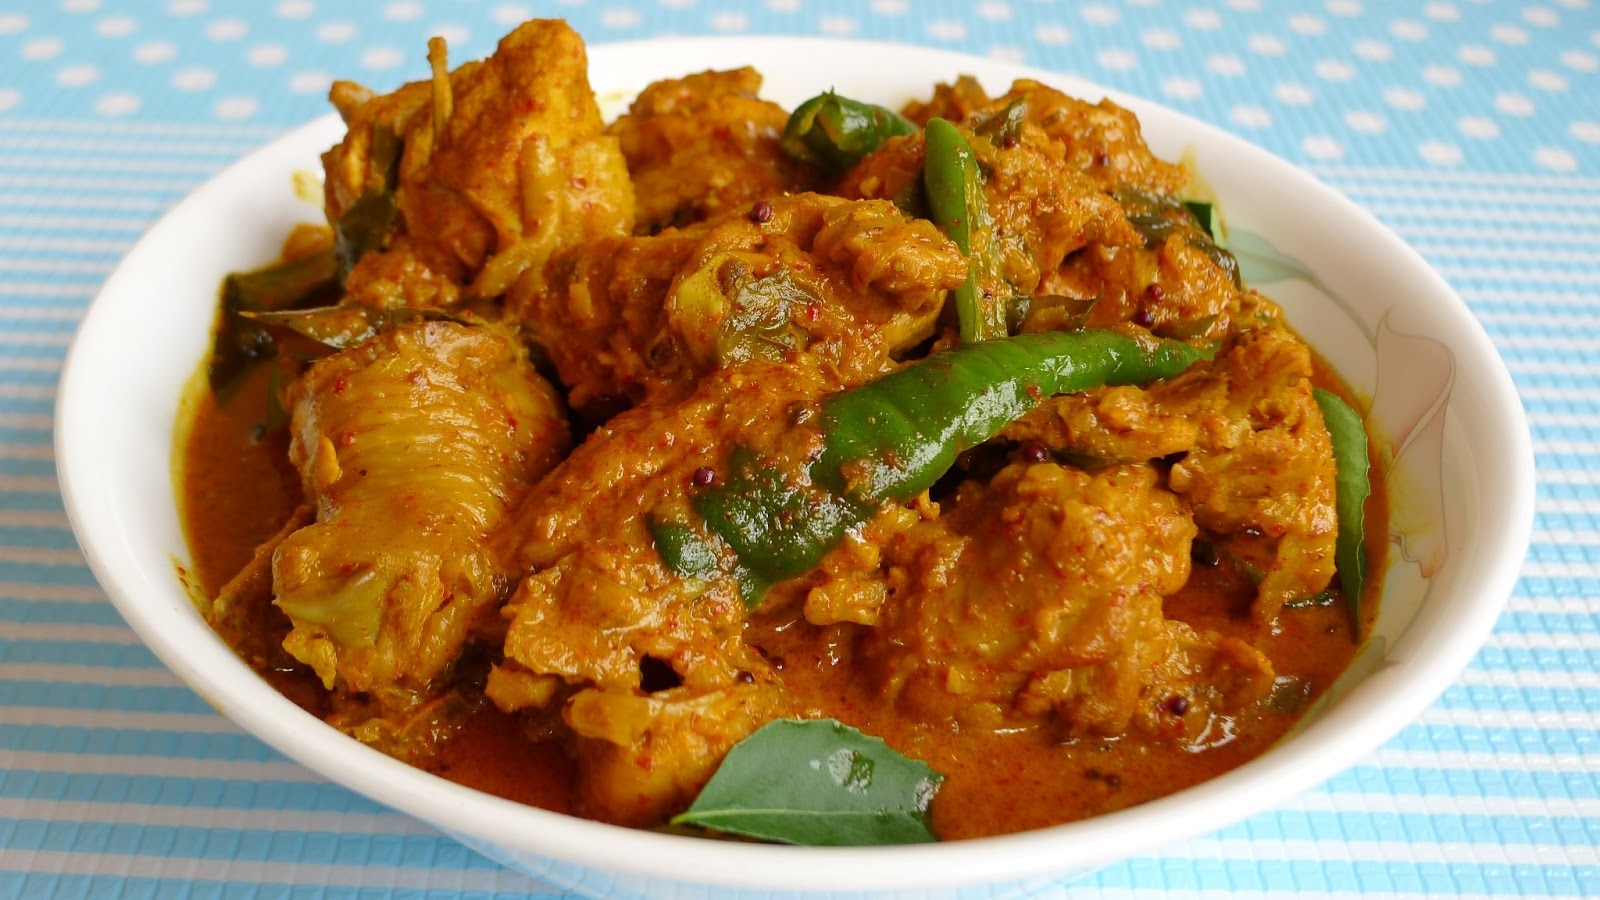 Come preparare il pollo al curry